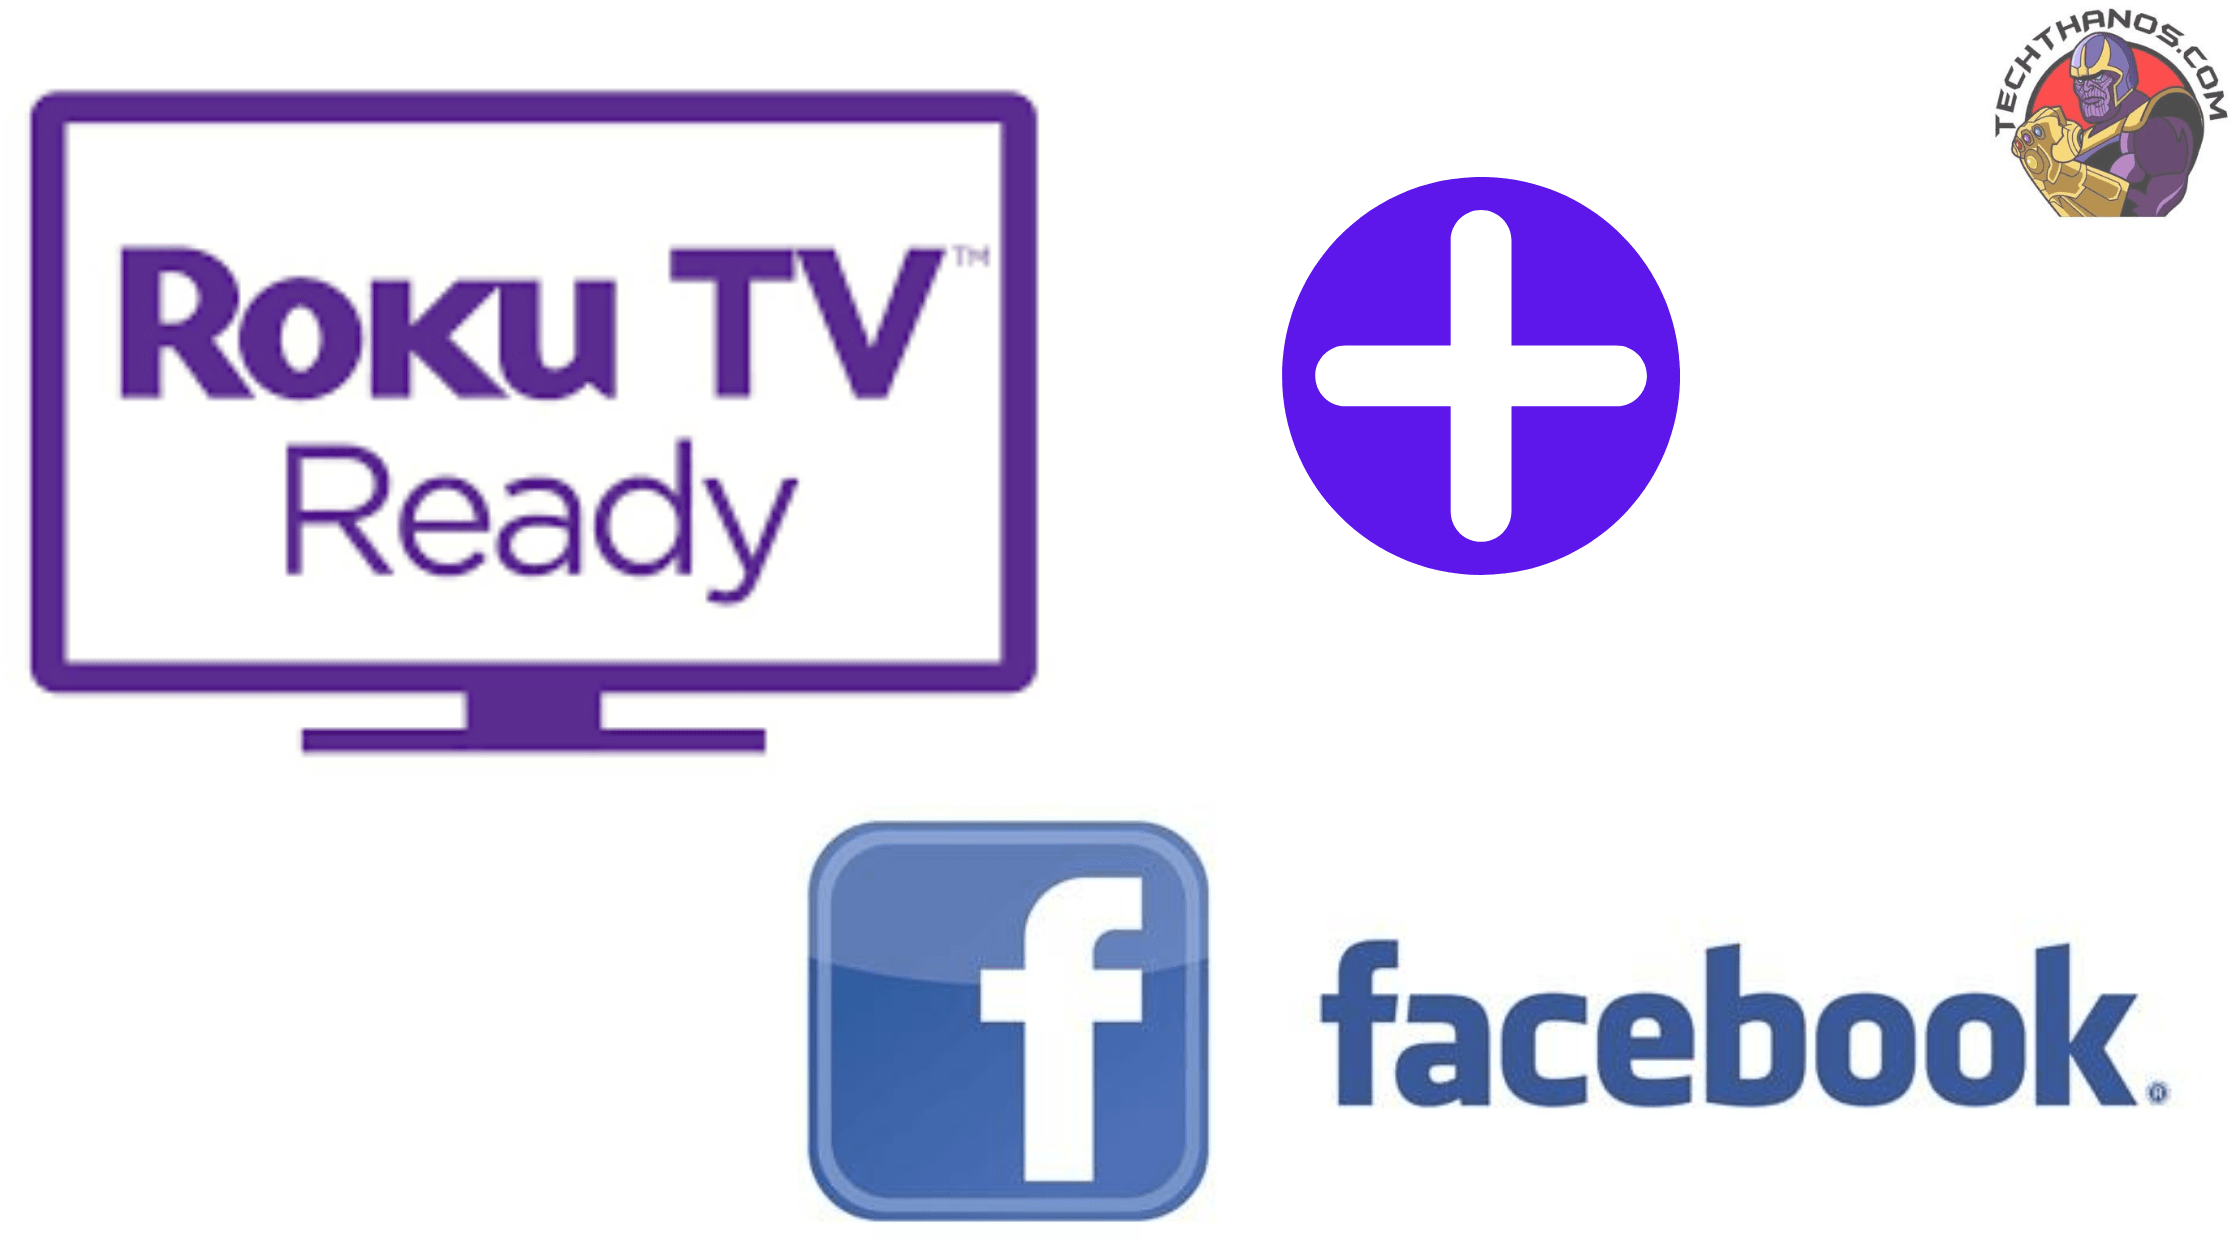 Facebook on ROku